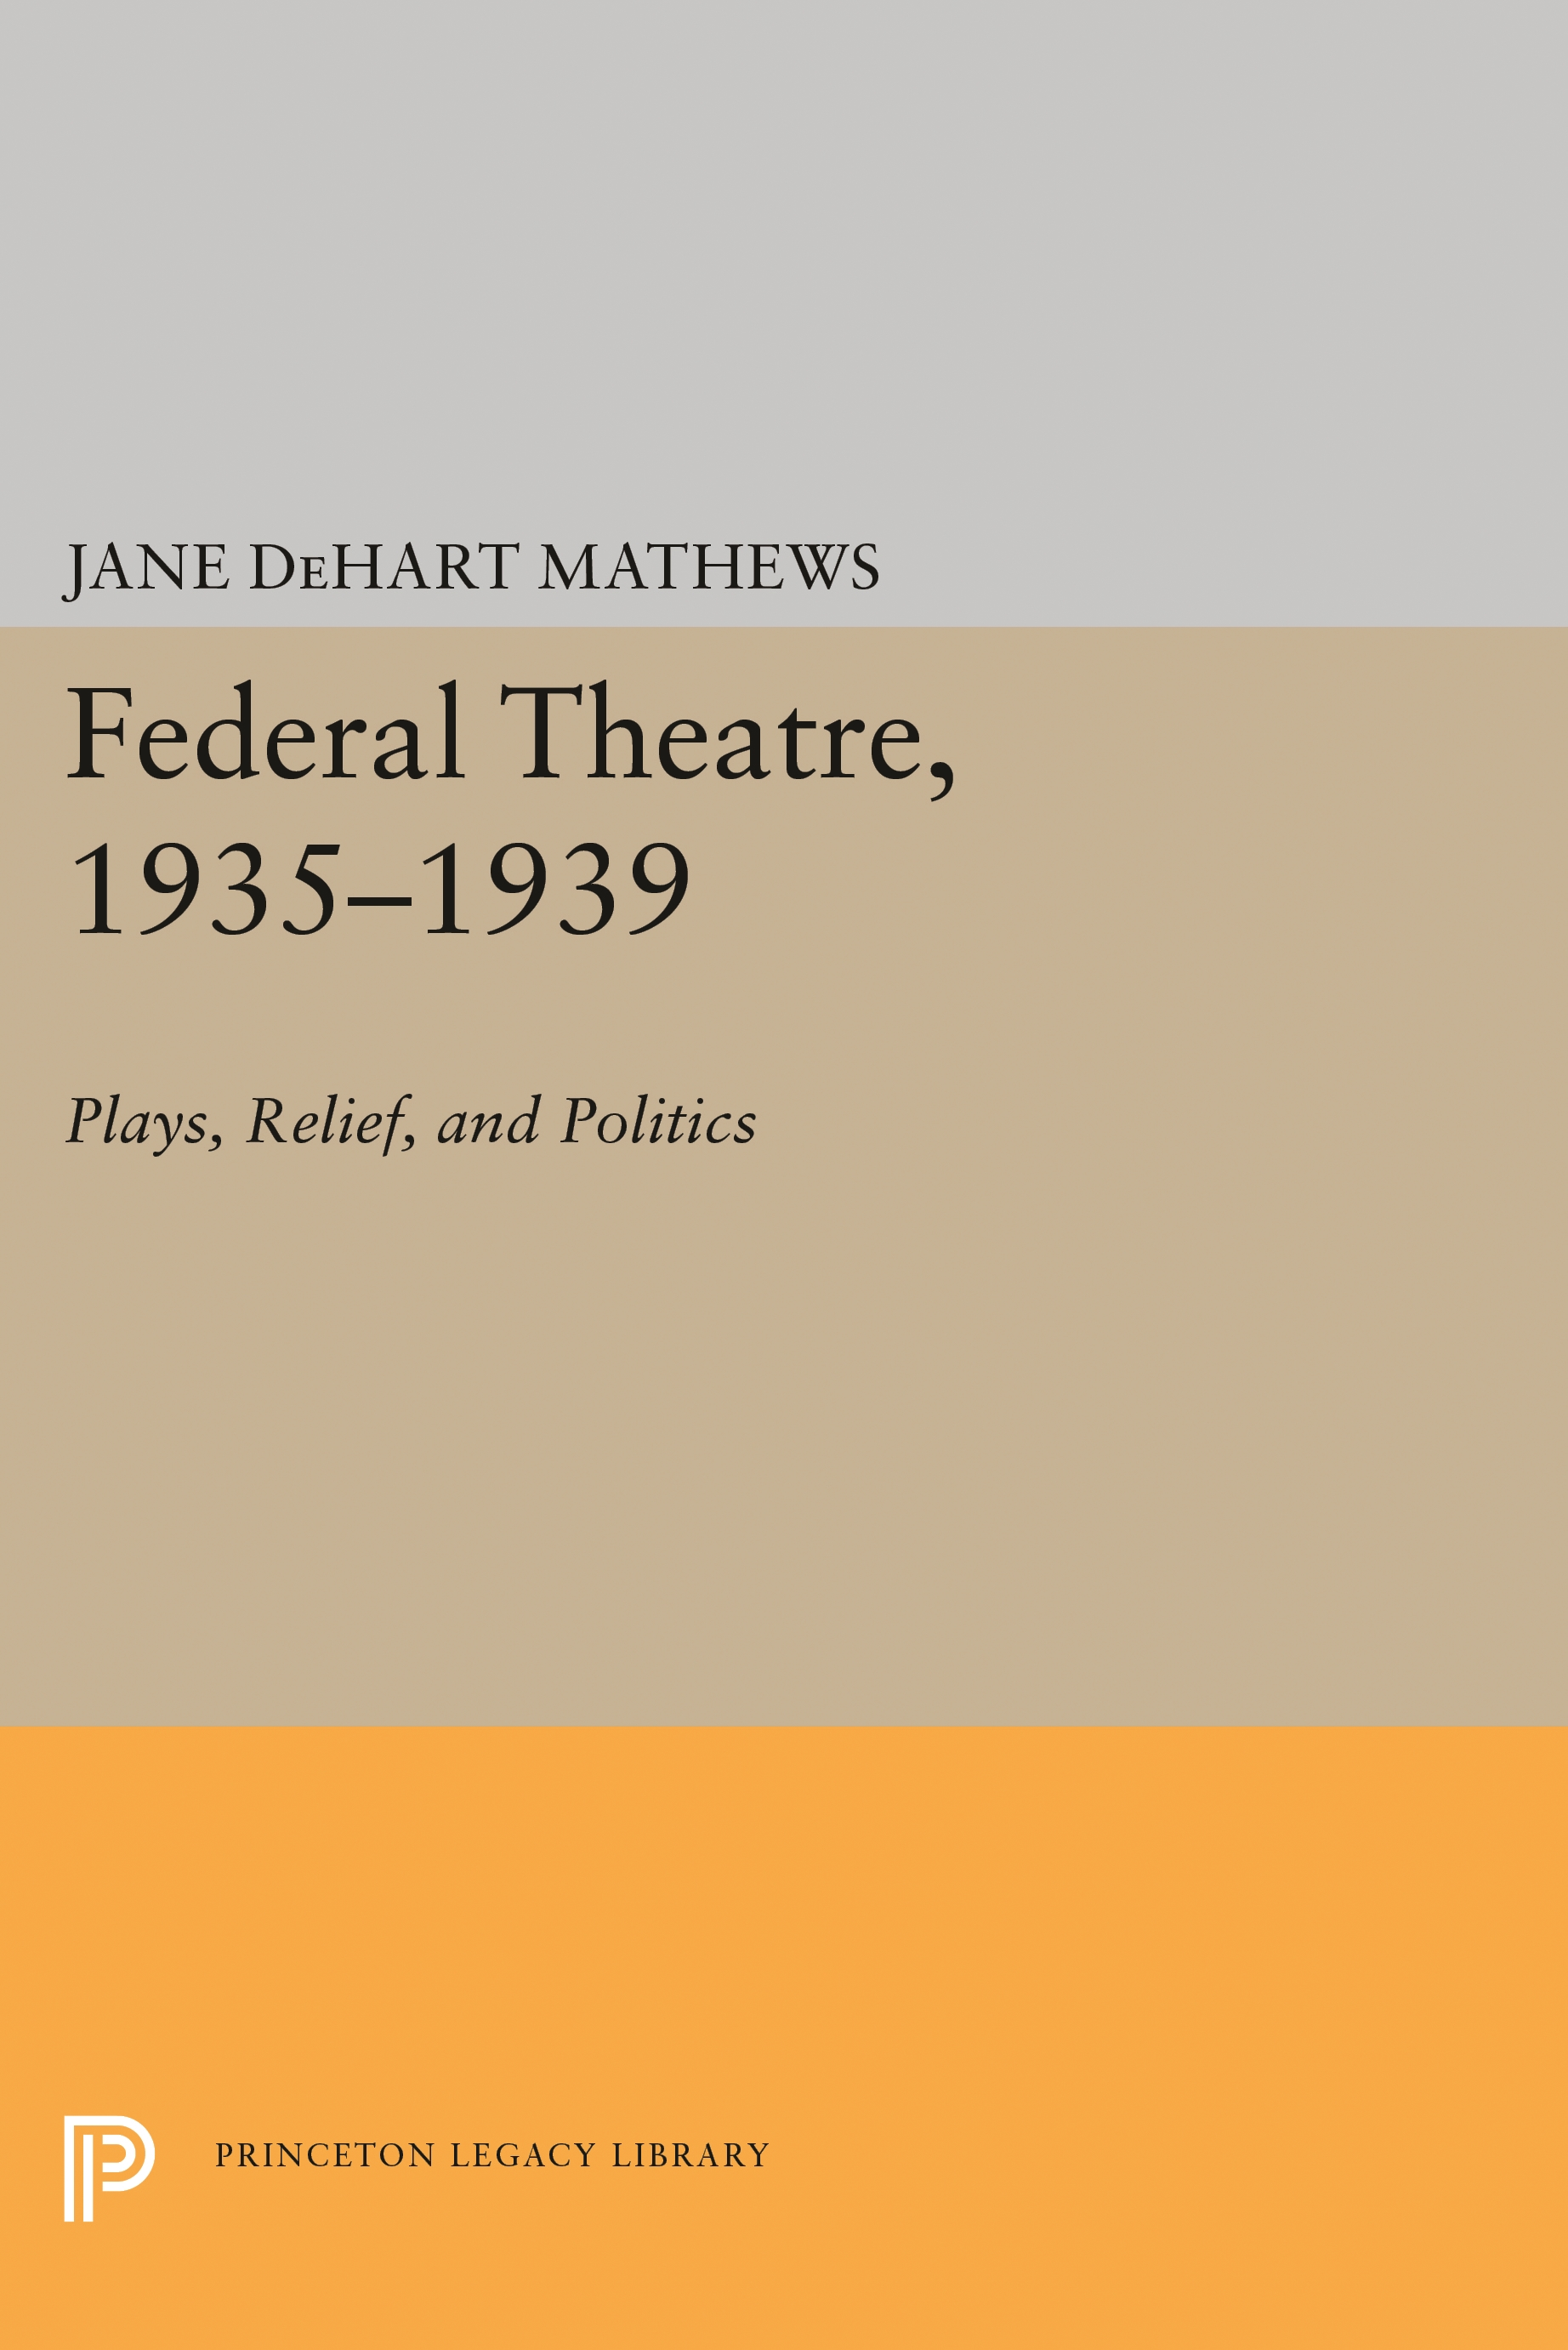 the federal theater project essay Presents a lesson plan constructed around materials found in the user's guide to the federal project the federal theater project produced radical and populist plays during the great depression before being de-funded by a conservative congress.